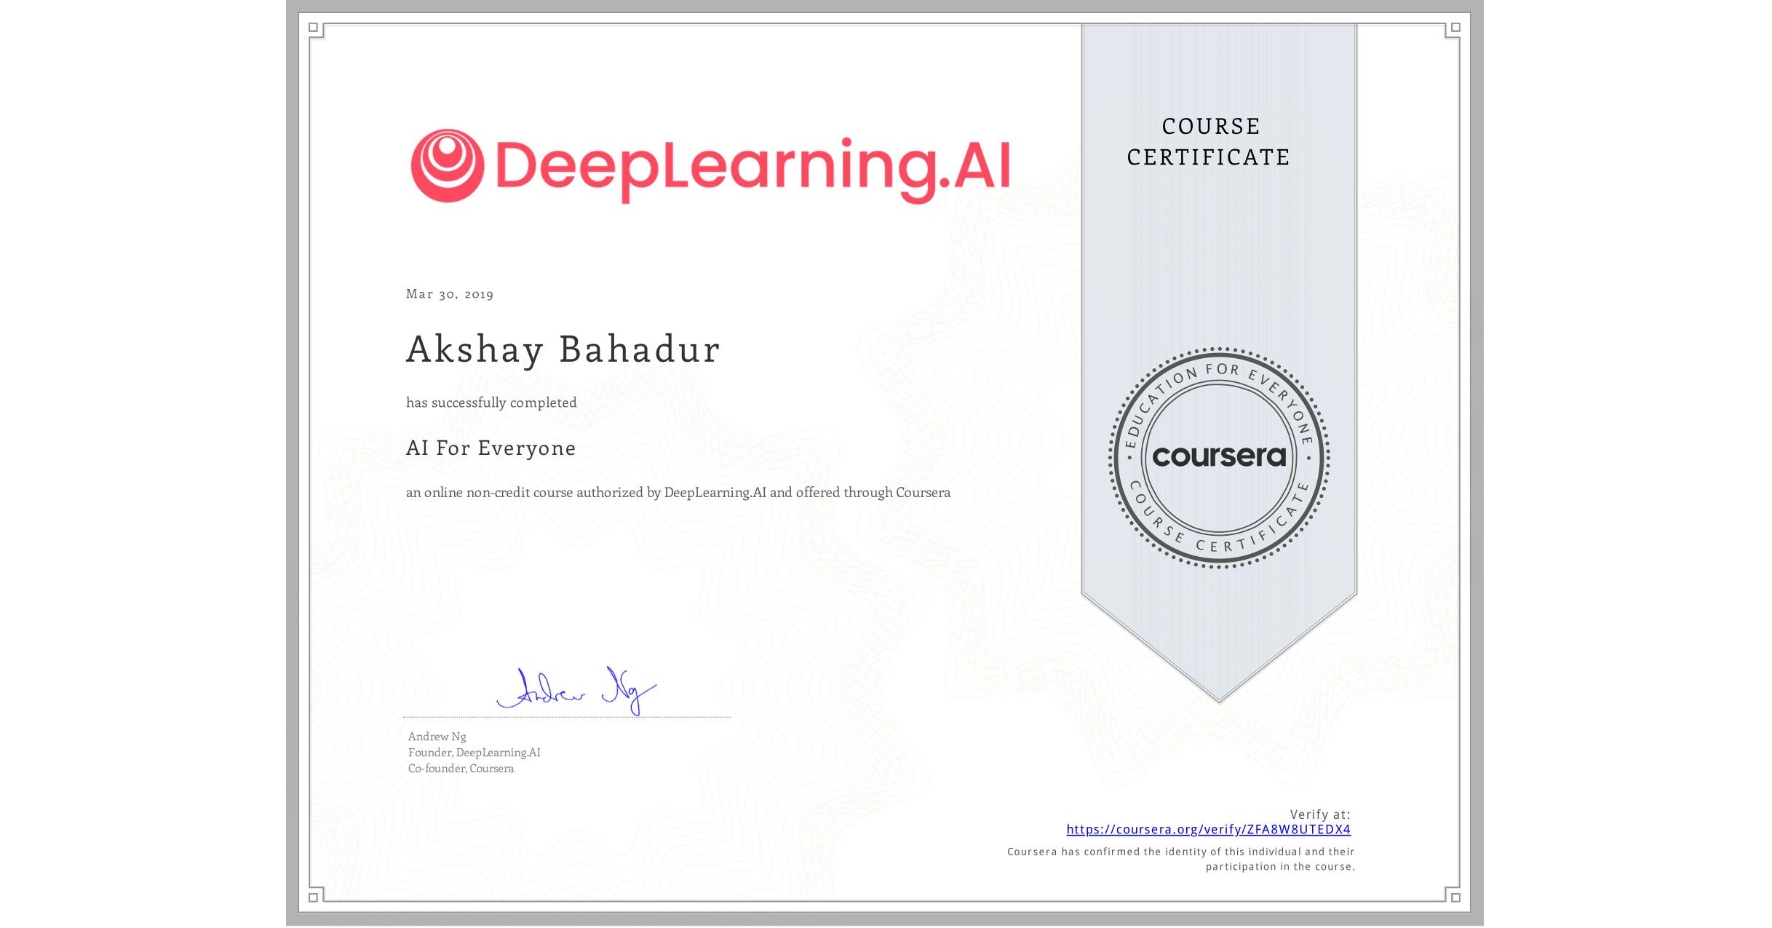 View certificate for Akshay Bahadur, AI For Everyone, an online non-credit course authorized by DeepLearning.AI and offered through Coursera